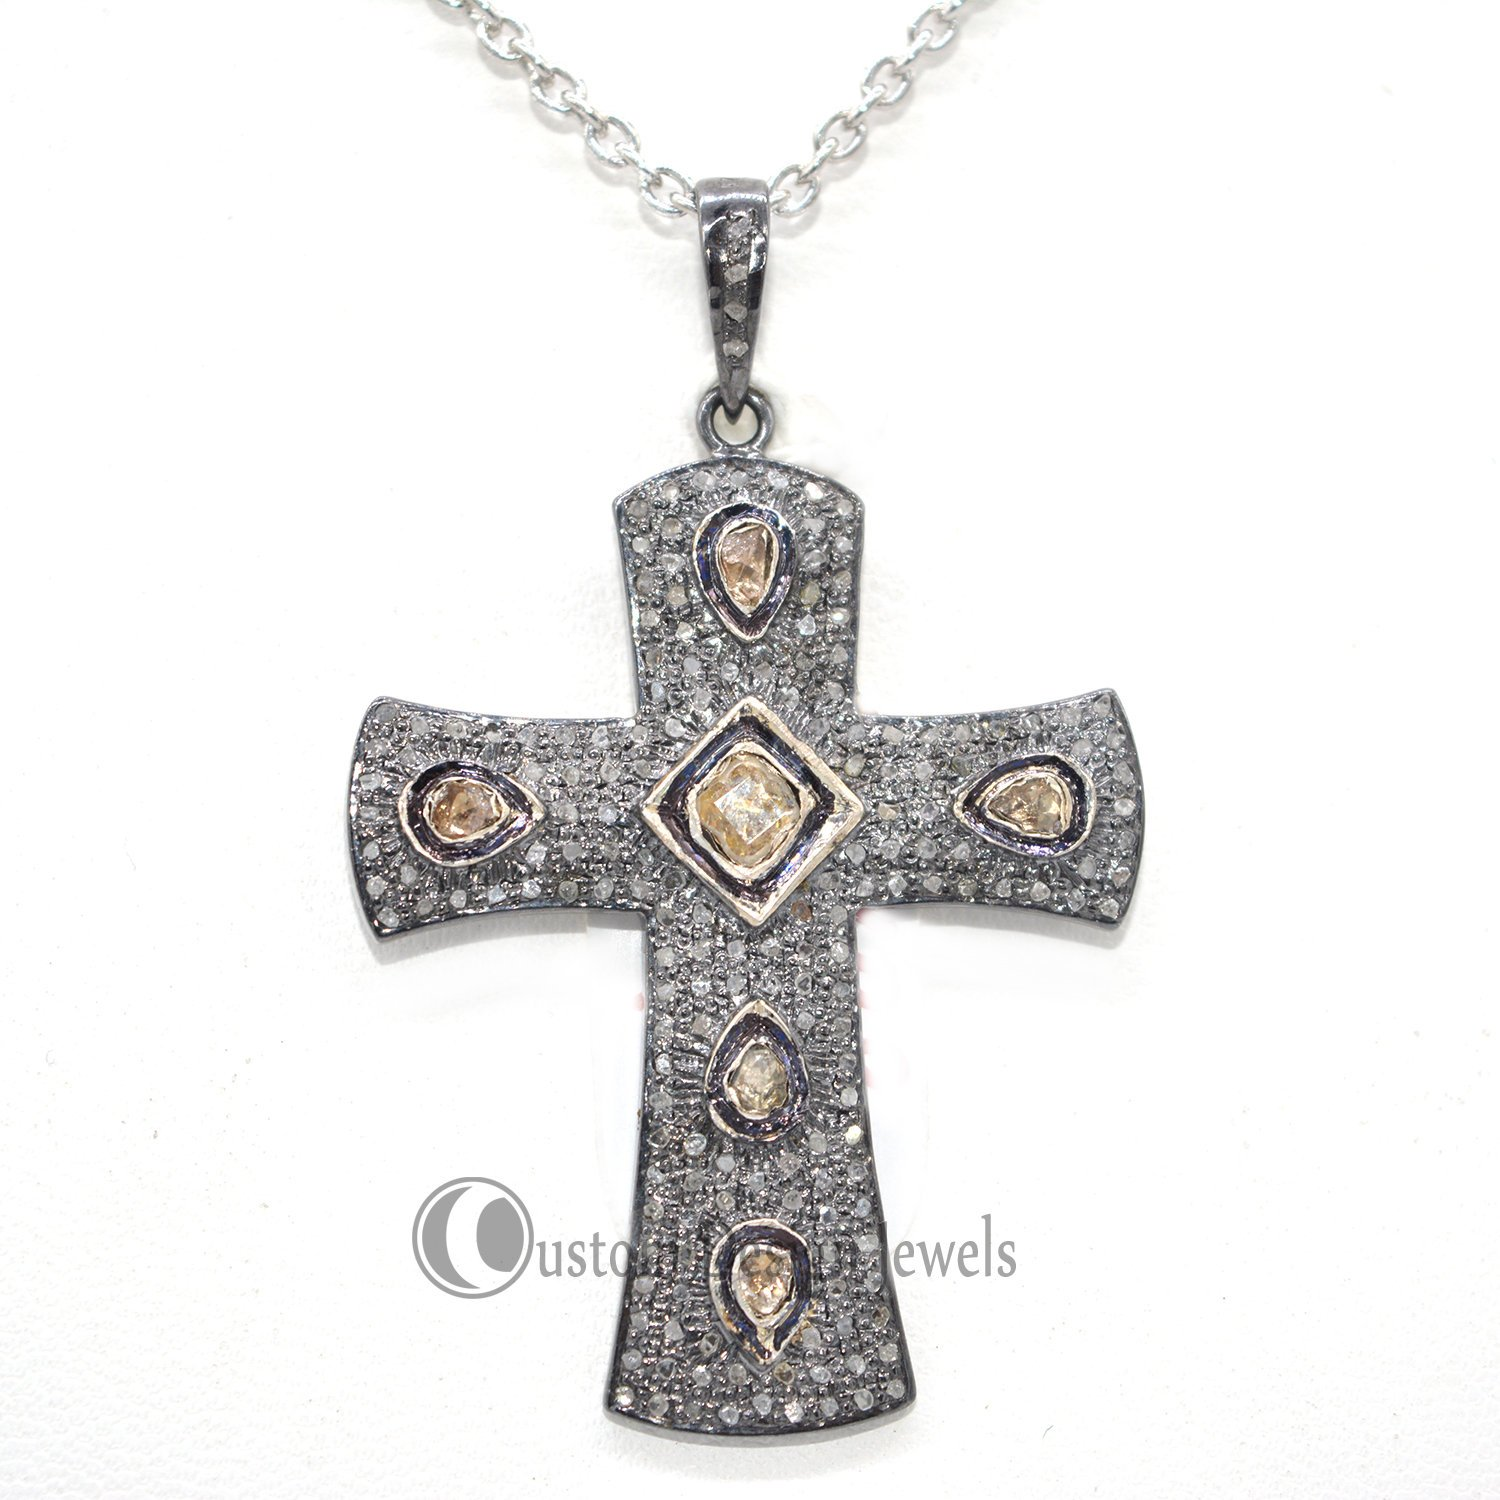 Rose Cut diamond Diamond Cross Pendant Jewelry, Pave Cross Pendant, Diamond Jewelry, 92.5 Silver Jewelry For Women's Gemstone pendant